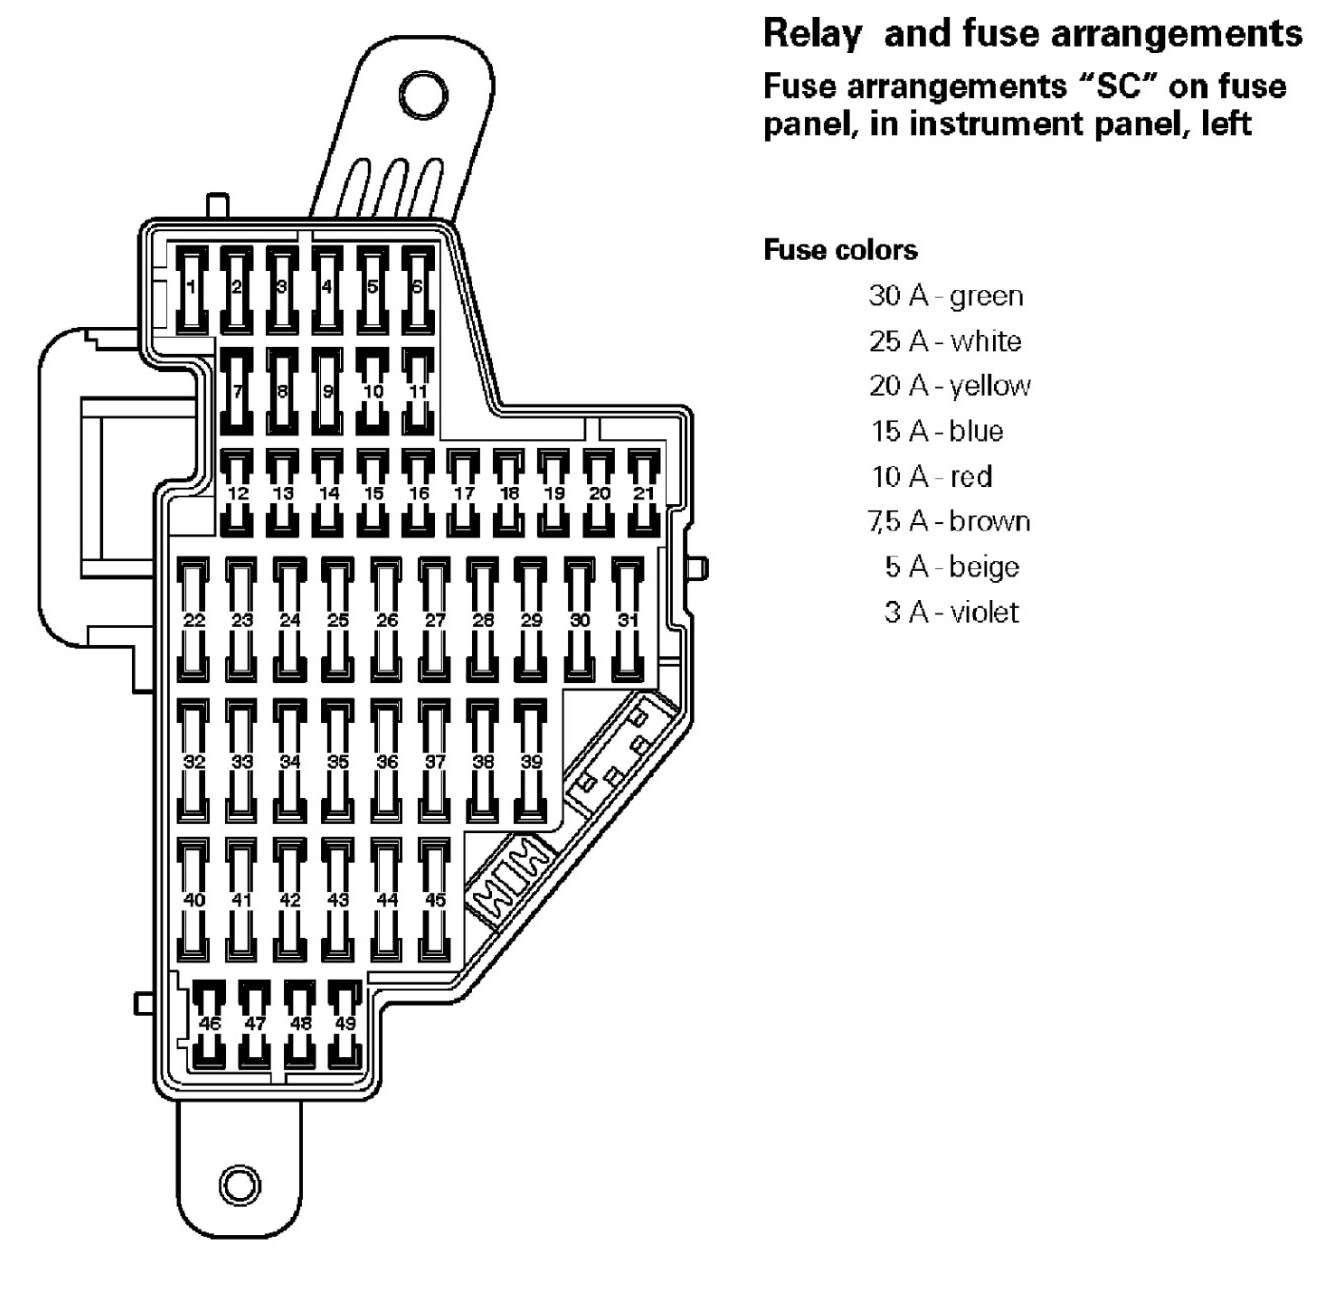 Ebox 2006 Jetta Fuse Diagram Simple Electrical Wiring 01 Audi A4 Box Location 99 Vw Image Details